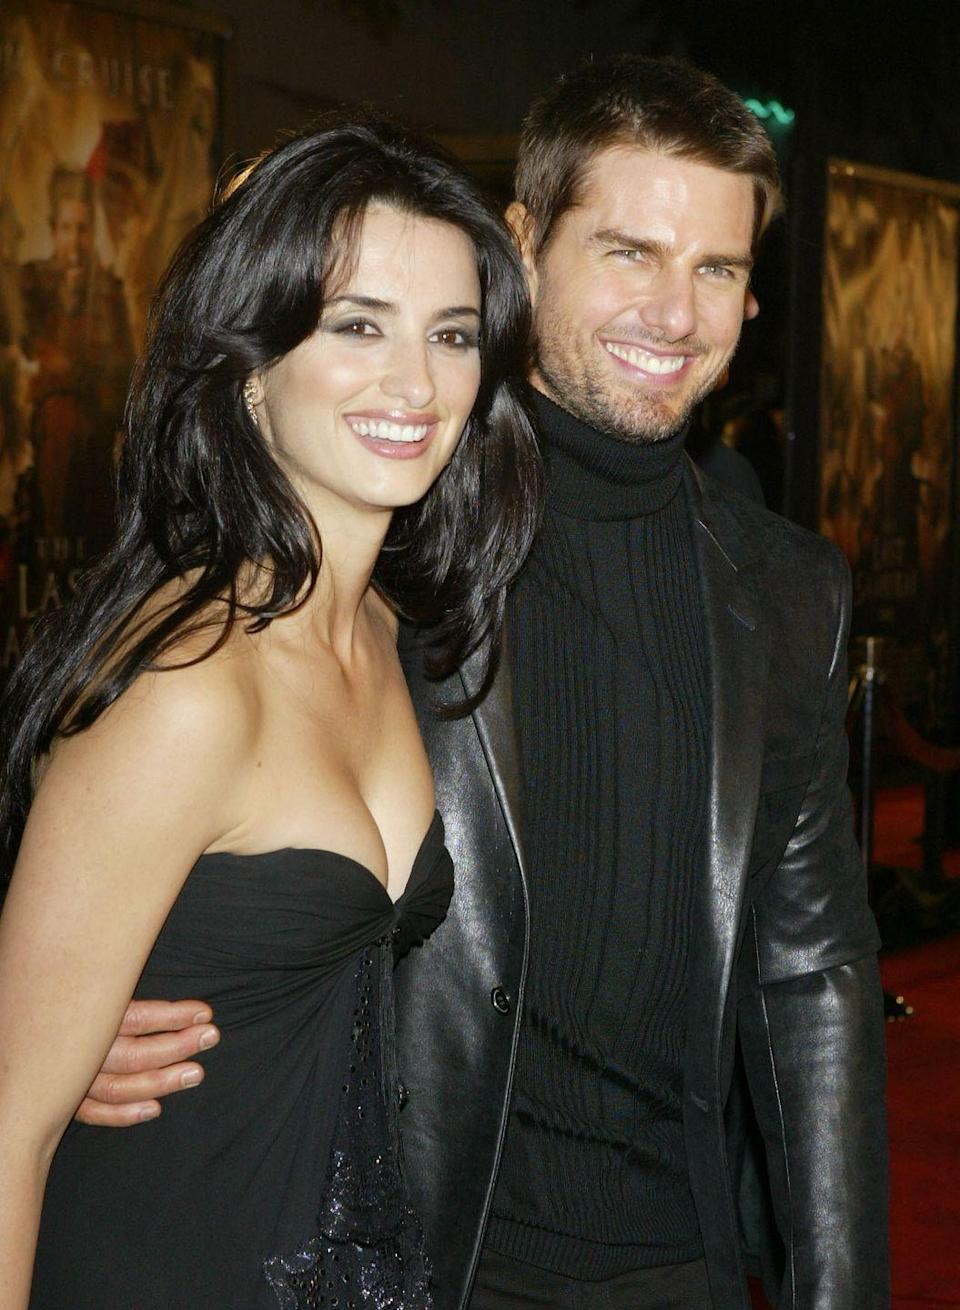 """<p>While they may have met on the set of <em>Vanilla Sky </em>when Cruise was married, the couple didn't make their relationship public until the August 2001 premiere of <em>Captain Corelli's Mandolin</em>. The two split in 2004. </p><p>""""I've never fallen in love with someone I'm working with. It's always been afterwards. If something becomes friendship, then maybe months later it becomes something else, but you can never know,"""" <a href=""""https://www.telegraph.co.uk/culture/film/starsandstories/3559549/Penelope-Cruz-I-dont-fall-in-love-when-Im-working.html"""" rel=""""nofollow noopener"""" target=""""_blank"""" data-ylk=""""slk:she said to The Telegraph"""" class=""""link rapid-noclick-resp"""">she said to <em>The Telegraph</em></a><em><a href=""""https://www.telegraph.co.uk/culture/film/starsandstories/3559549/Penelope-Cruz-I-dont-fall-in-love-when-Im-working.html"""" rel=""""nofollow noopener"""" target=""""_blank"""" data-ylk=""""slk:."""" class=""""link rapid-noclick-resp"""">.</a></em> """"It's always a mystery. You can't plan those things.""""</p>"""